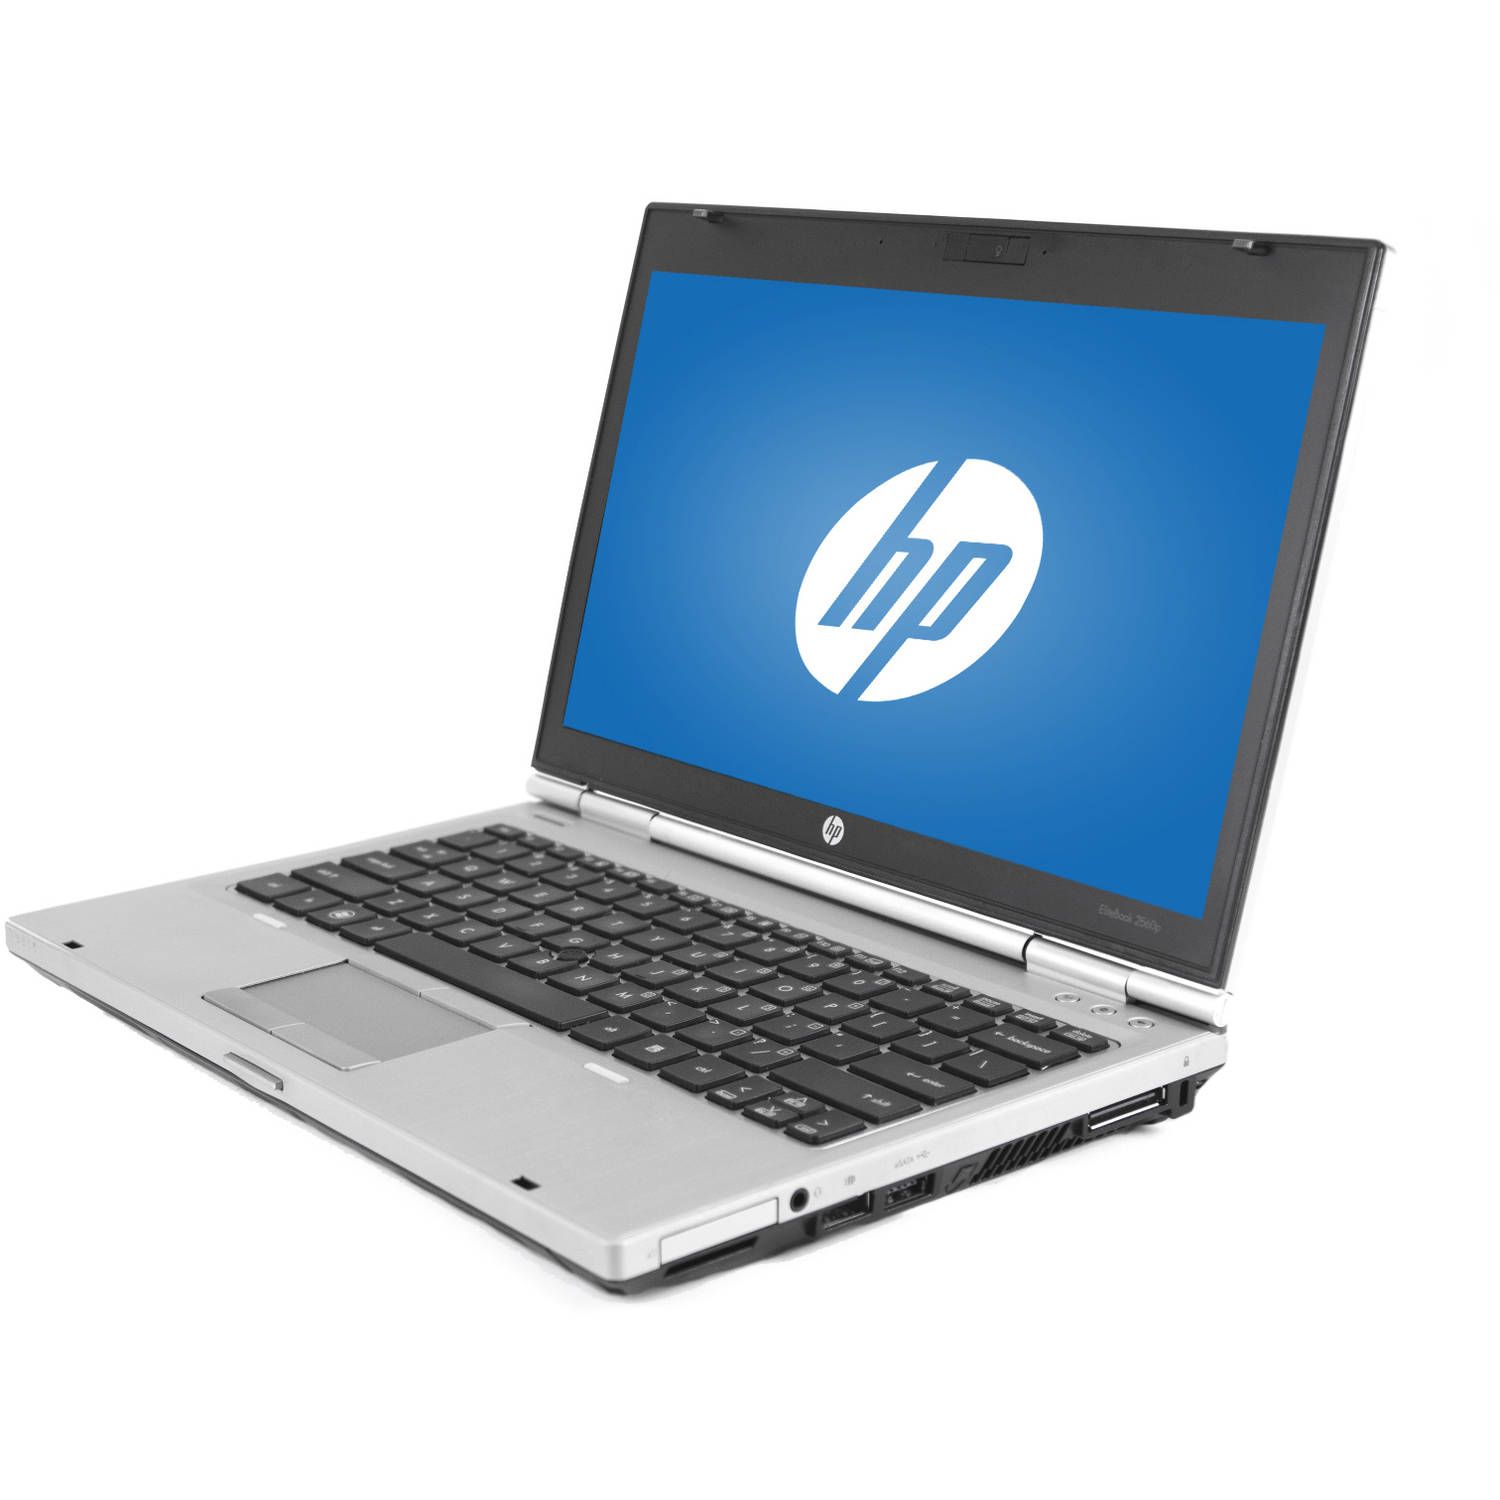 "Refurbished HP Silver 12.5"" EliteBook 2560P WA5-0998 Laptop PC with Intel Core i5-2520M Processor, 4GB Memory, 750GB Hard Drive and Windows 10 Home"